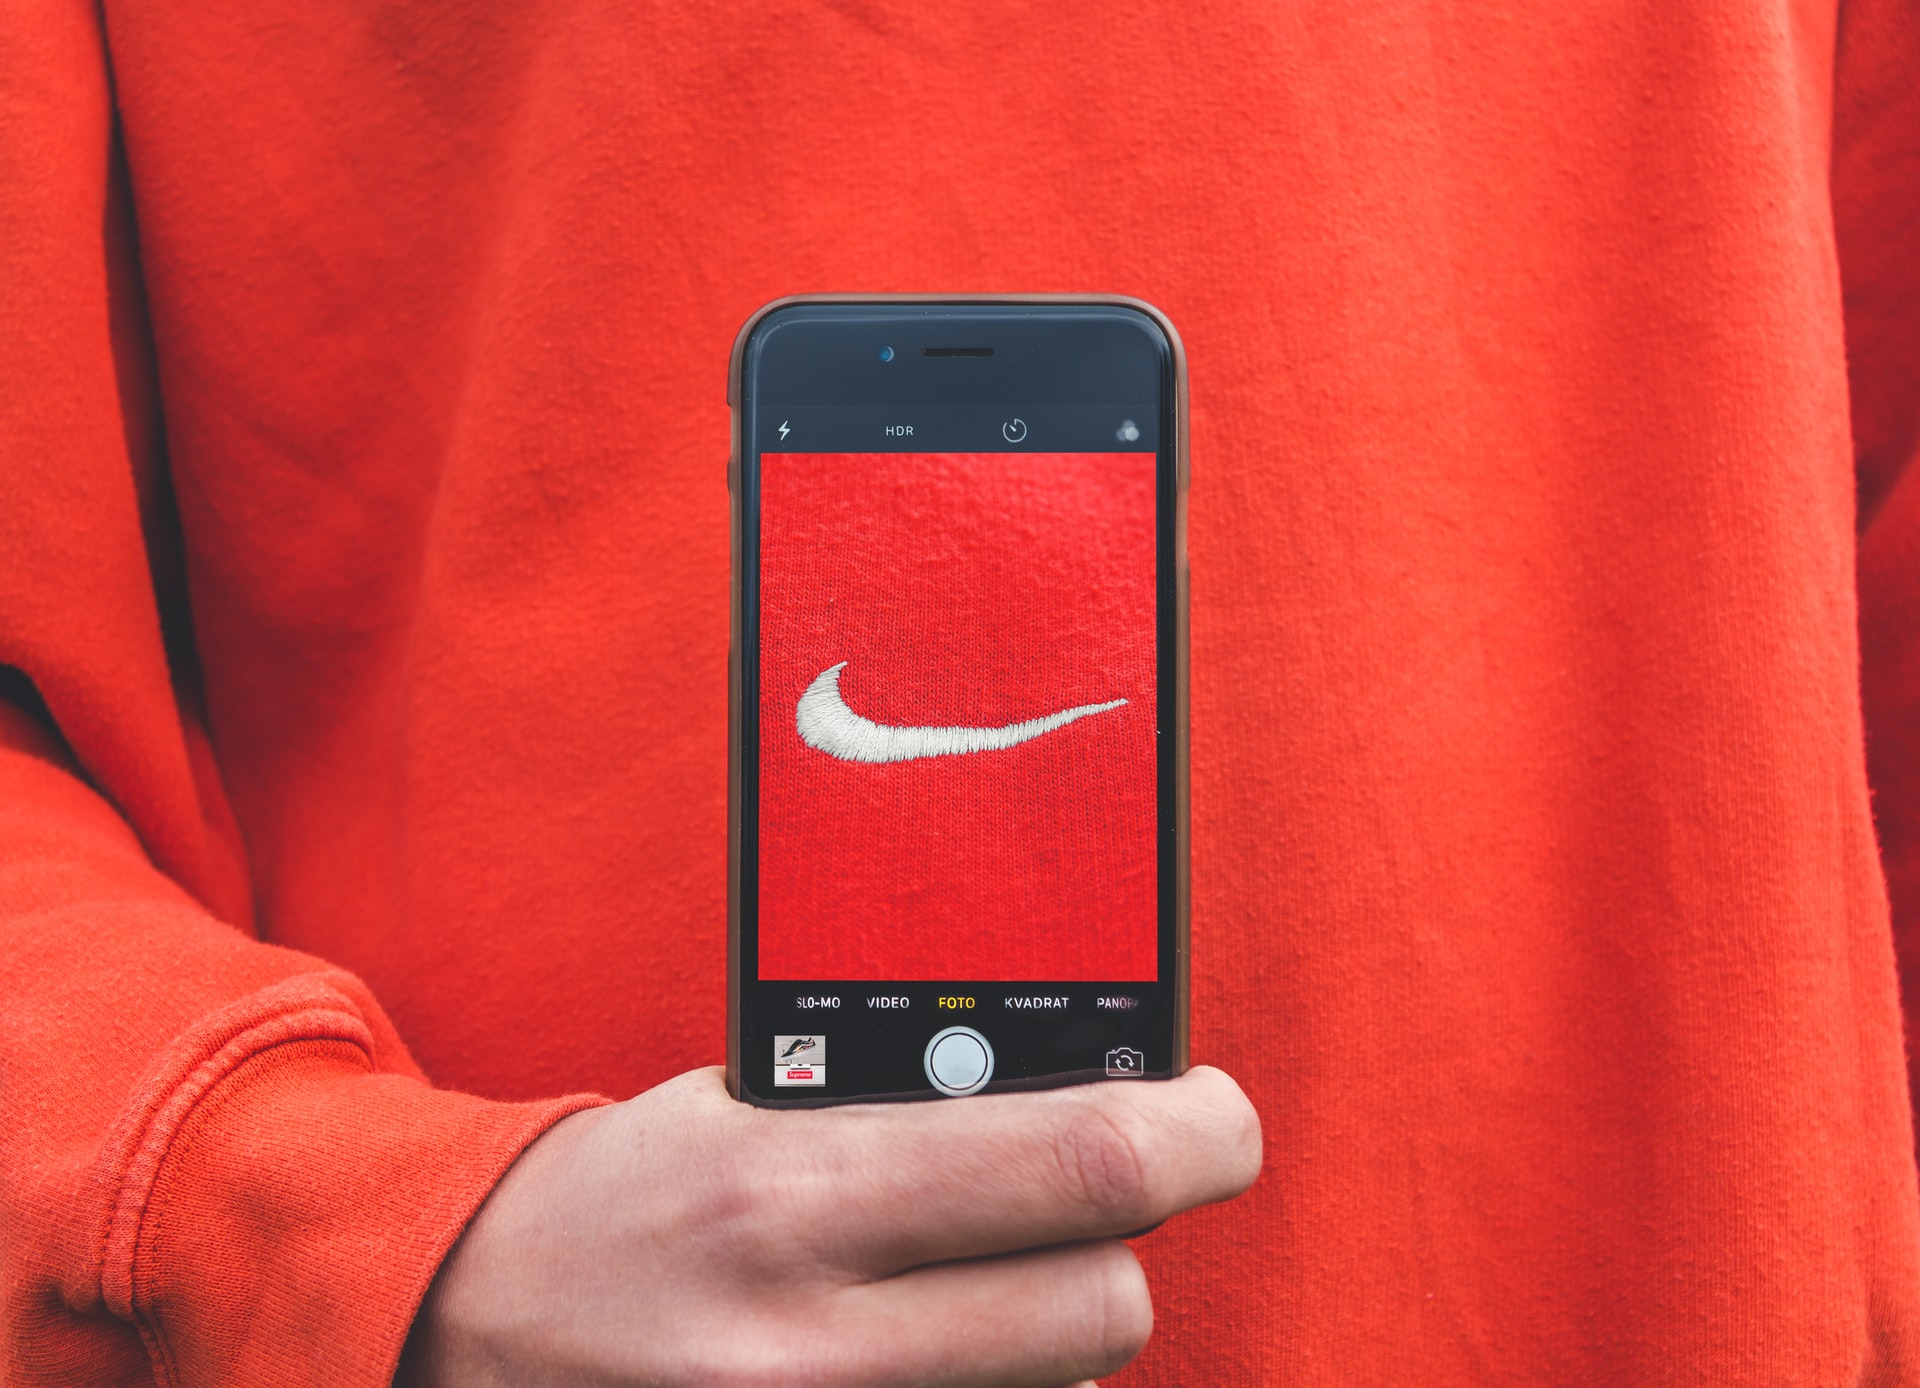 How to get your brand more exposure through social media